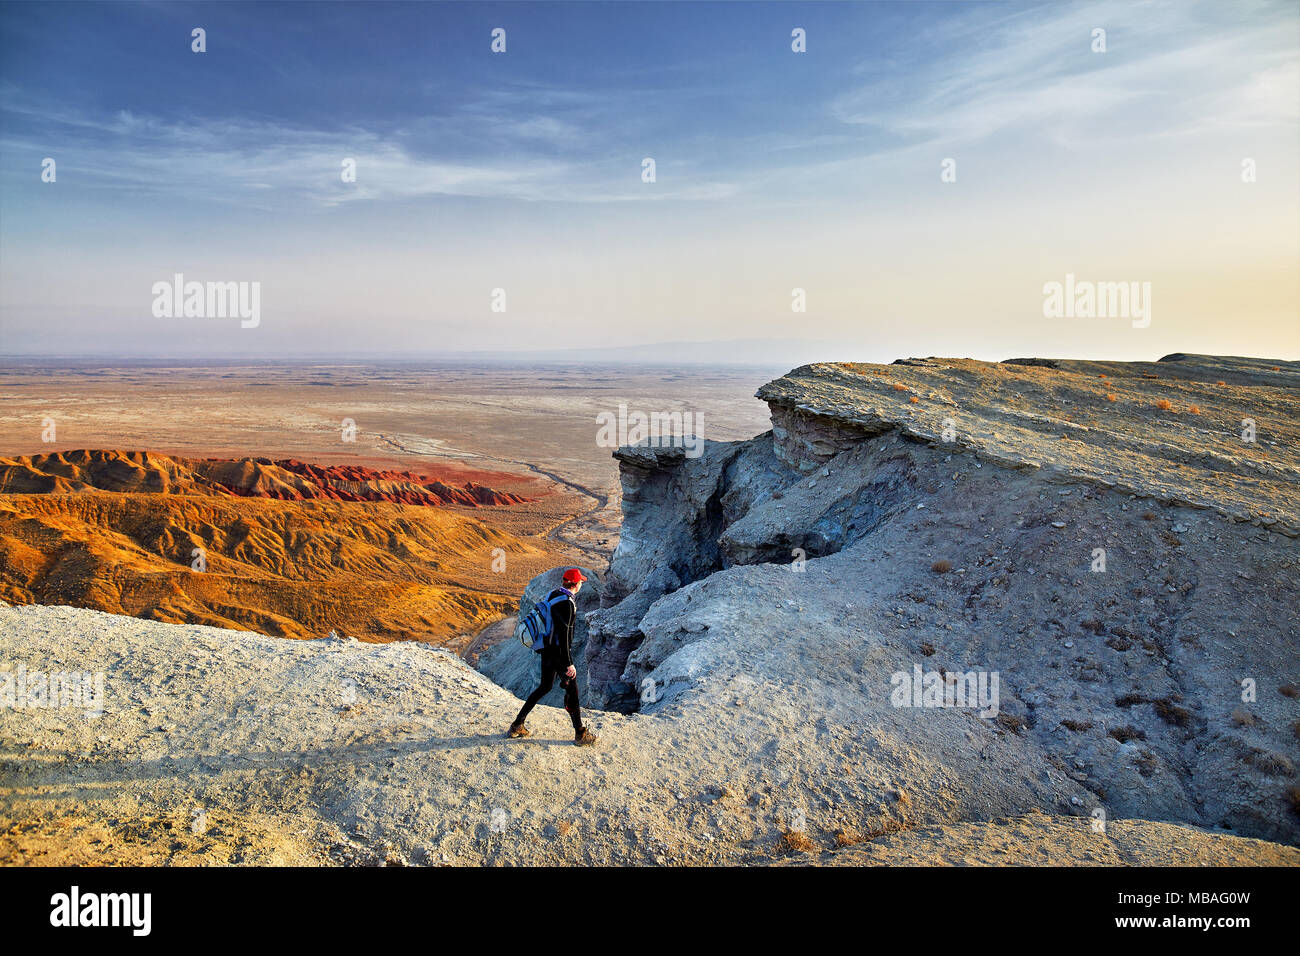 Tourist walking at the on surreal white mountains in desert park Altyn Emel in Kazakhstan - Stock Image